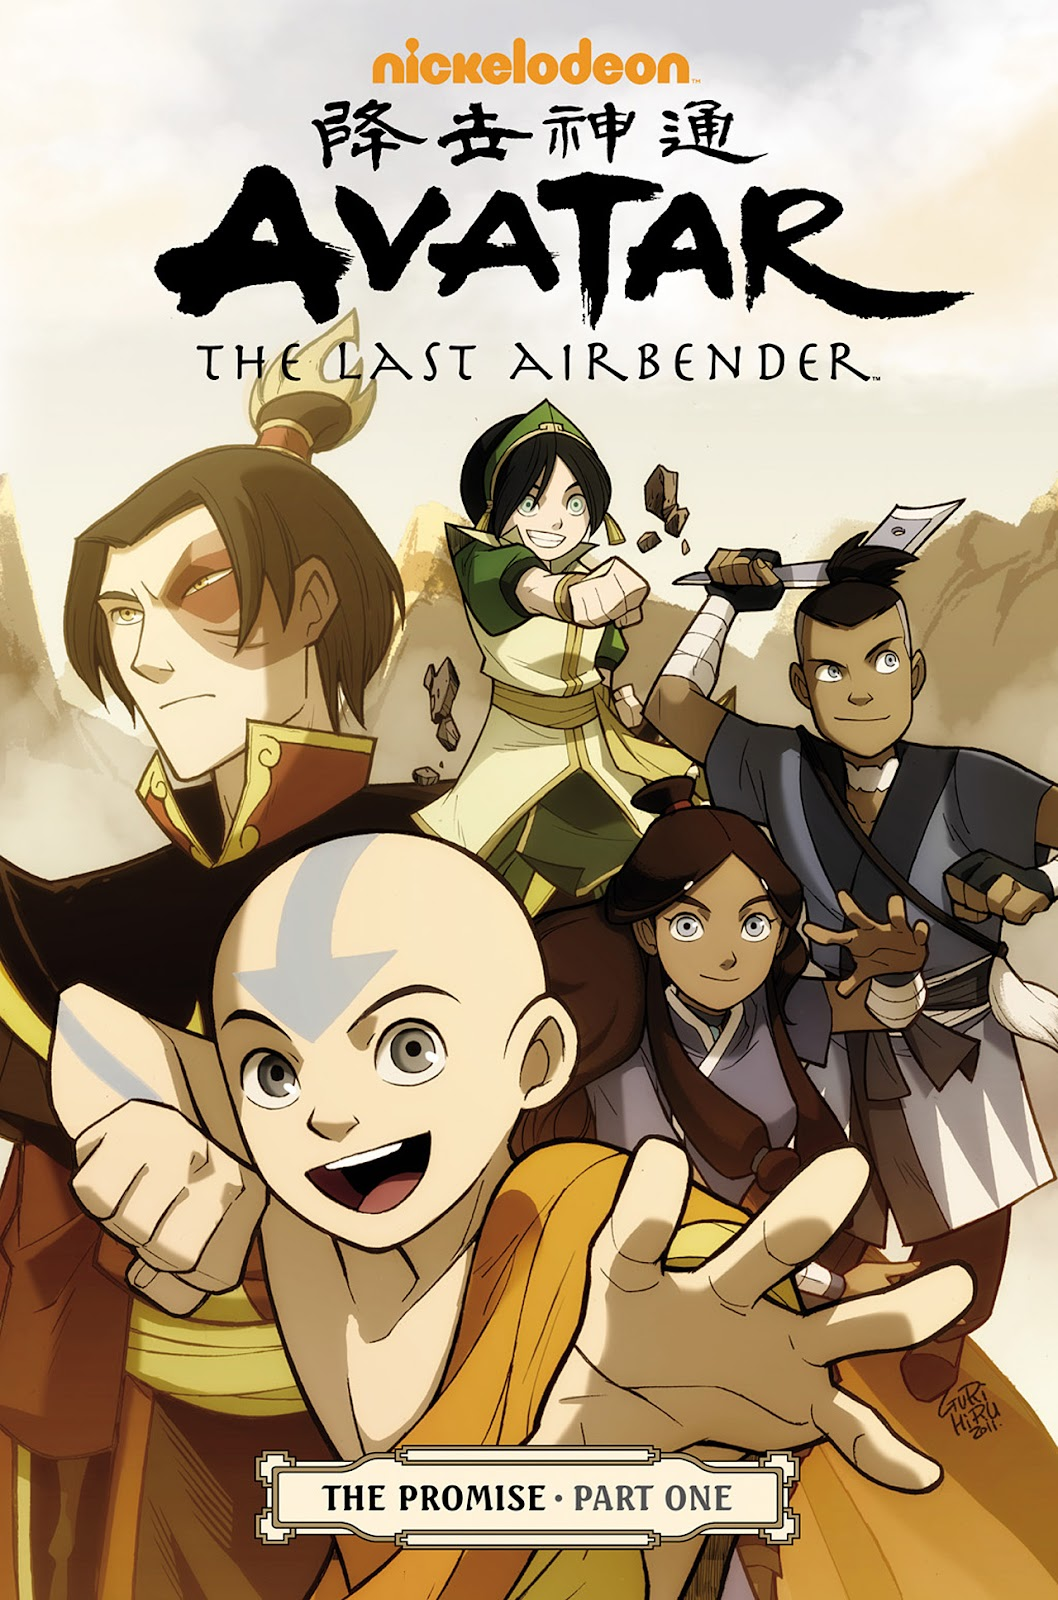 Nickelodeon Avatar: The Last Airbender - The Promise Part_1 Page 1